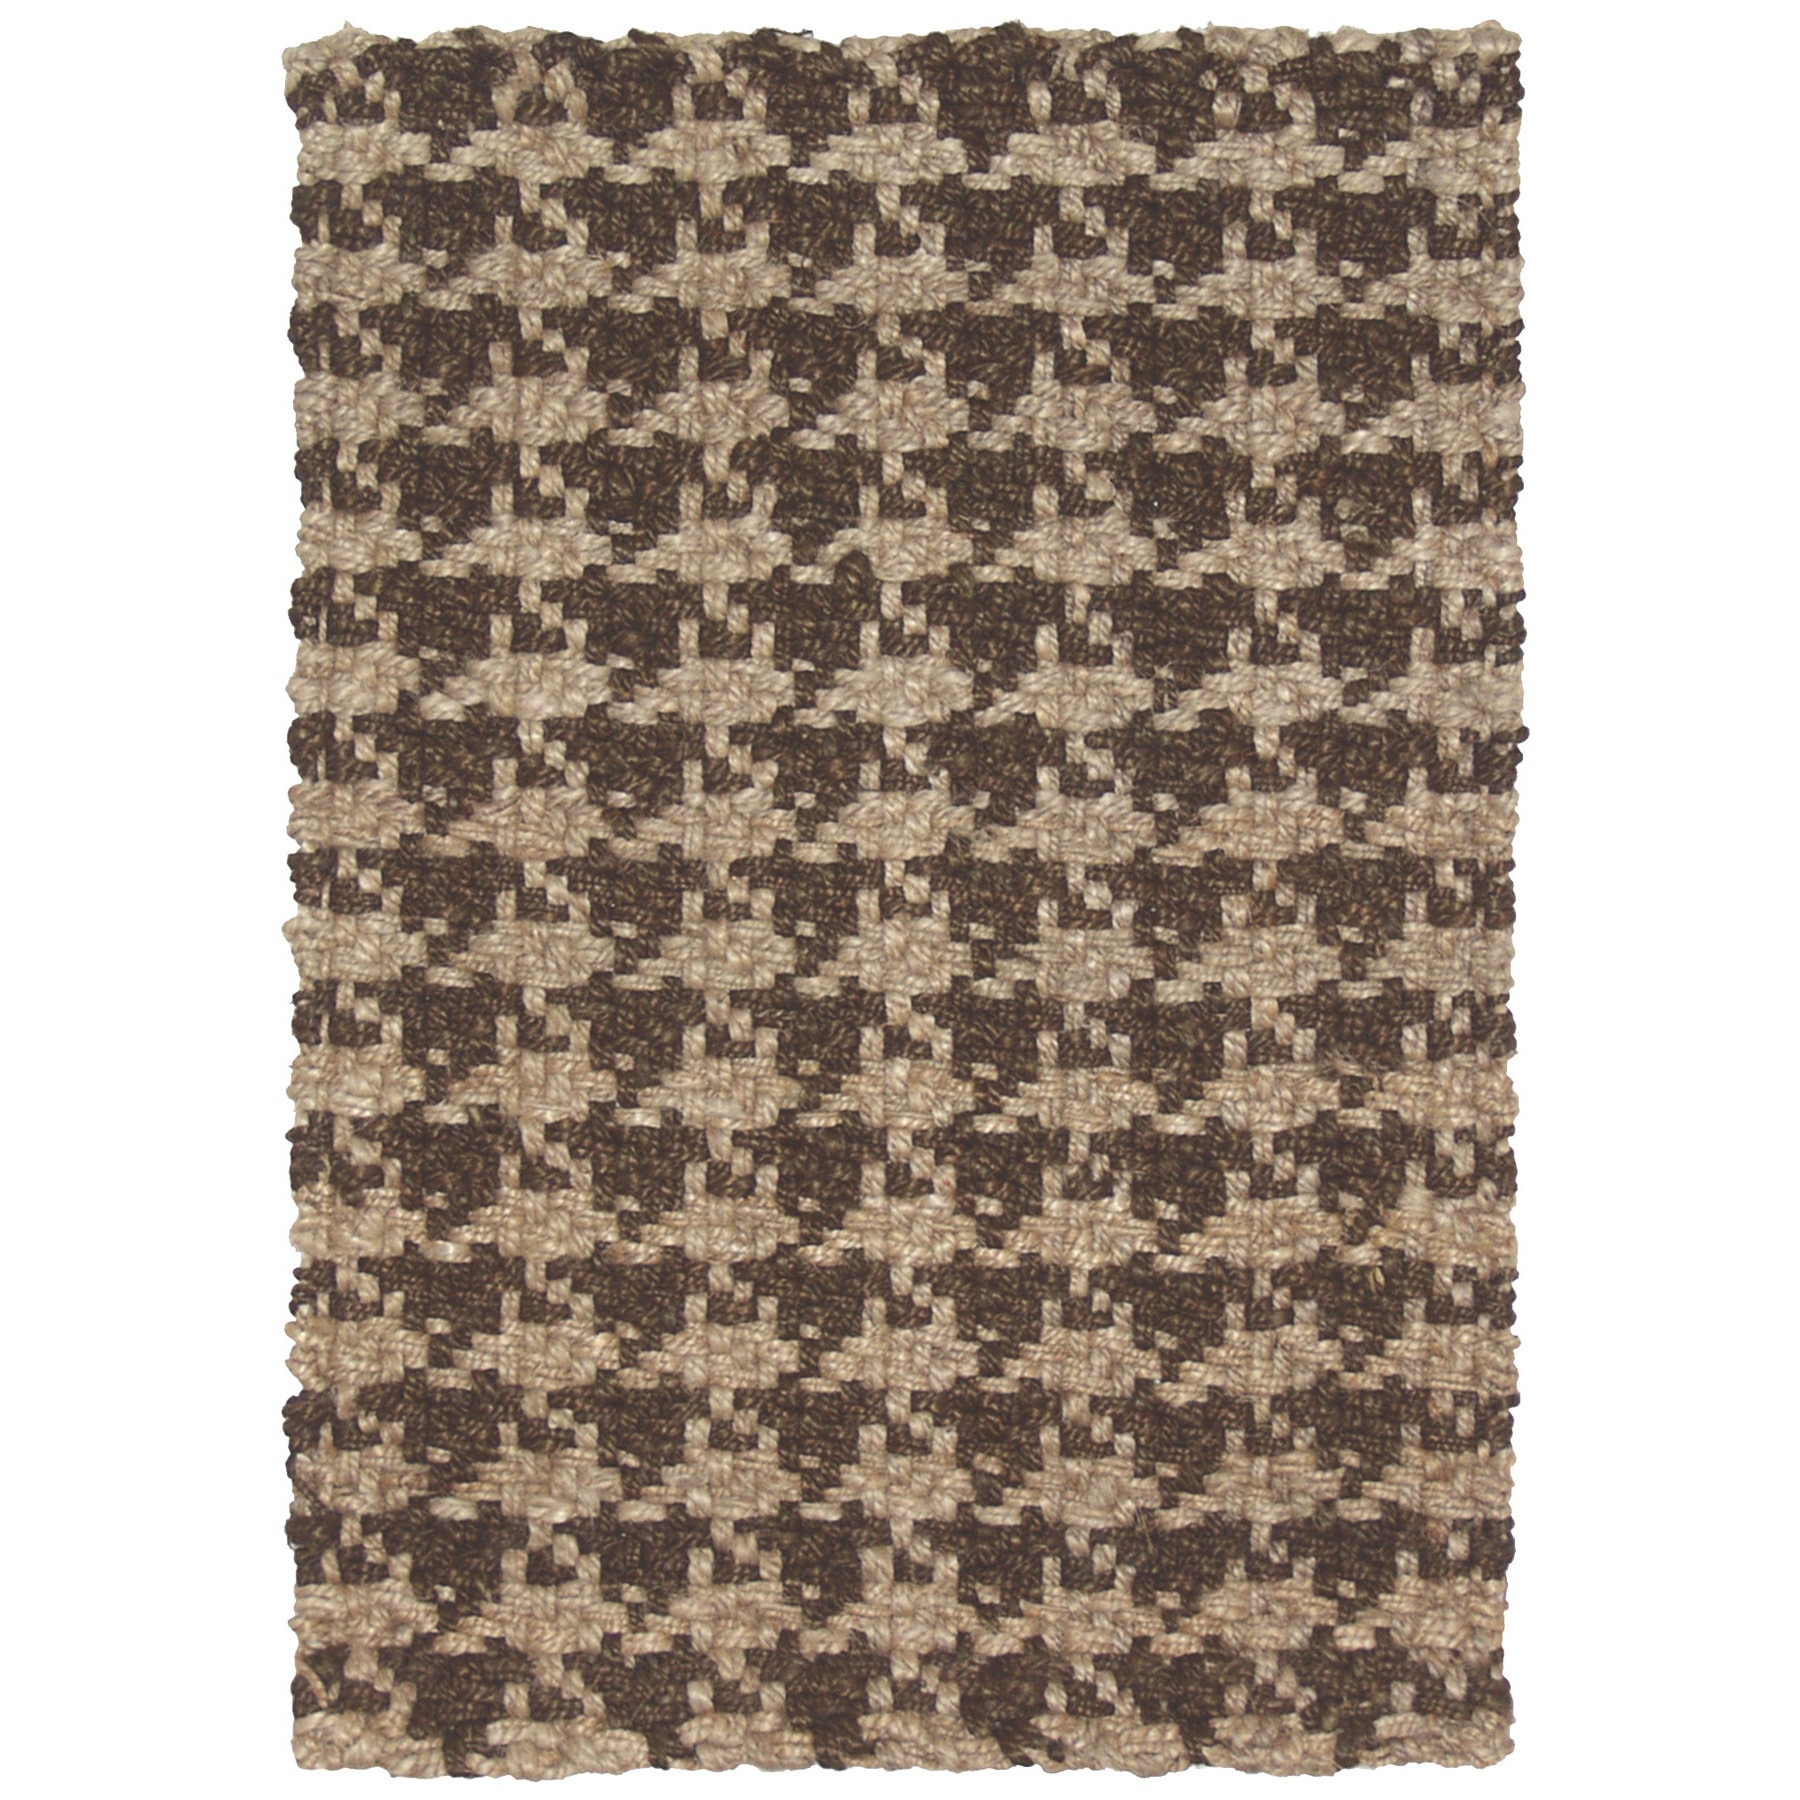 Kosas Home  Maricel Houndstooth Brown Jute 4x6 Rug